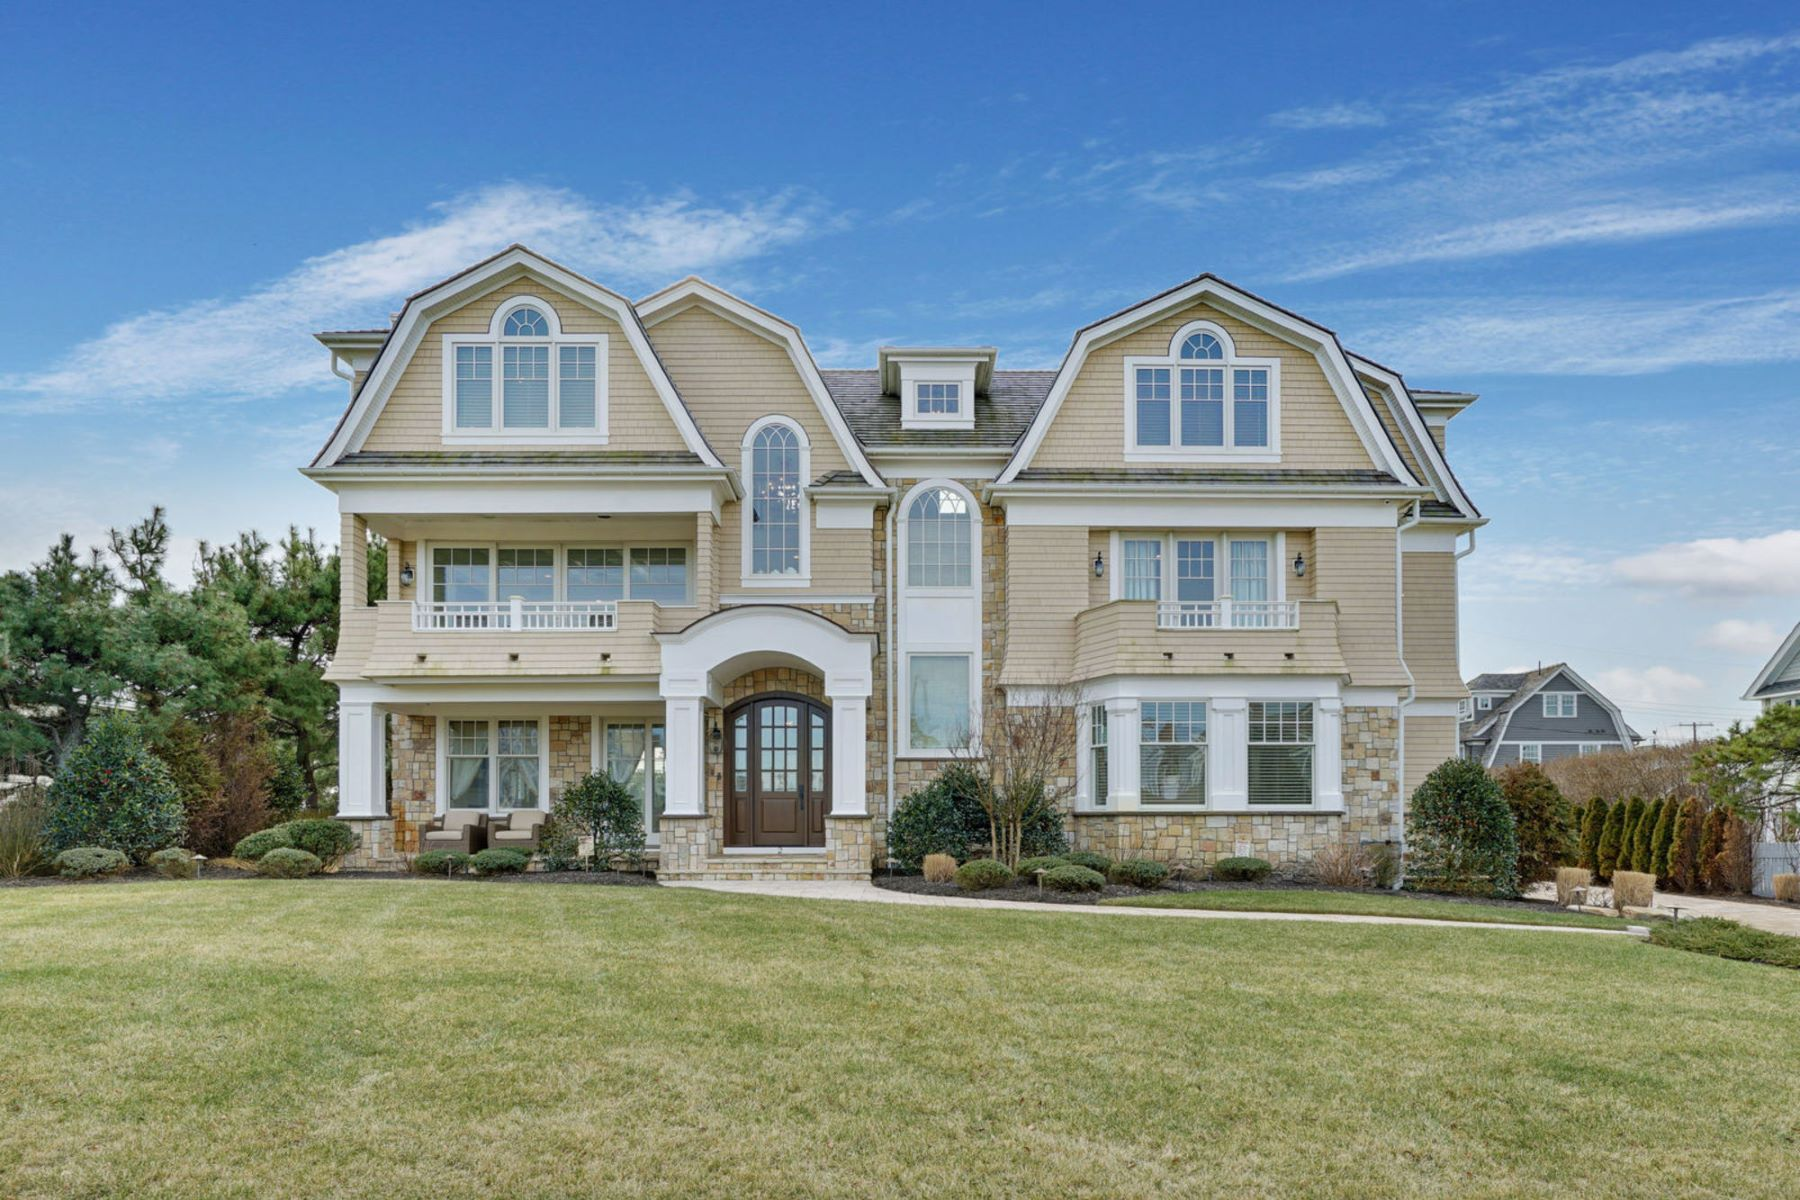 Single Family Home for Sale at Perfection Knows No Boundaries 2 Neptune Place, Sea Girt, New Jersey 08750 United States